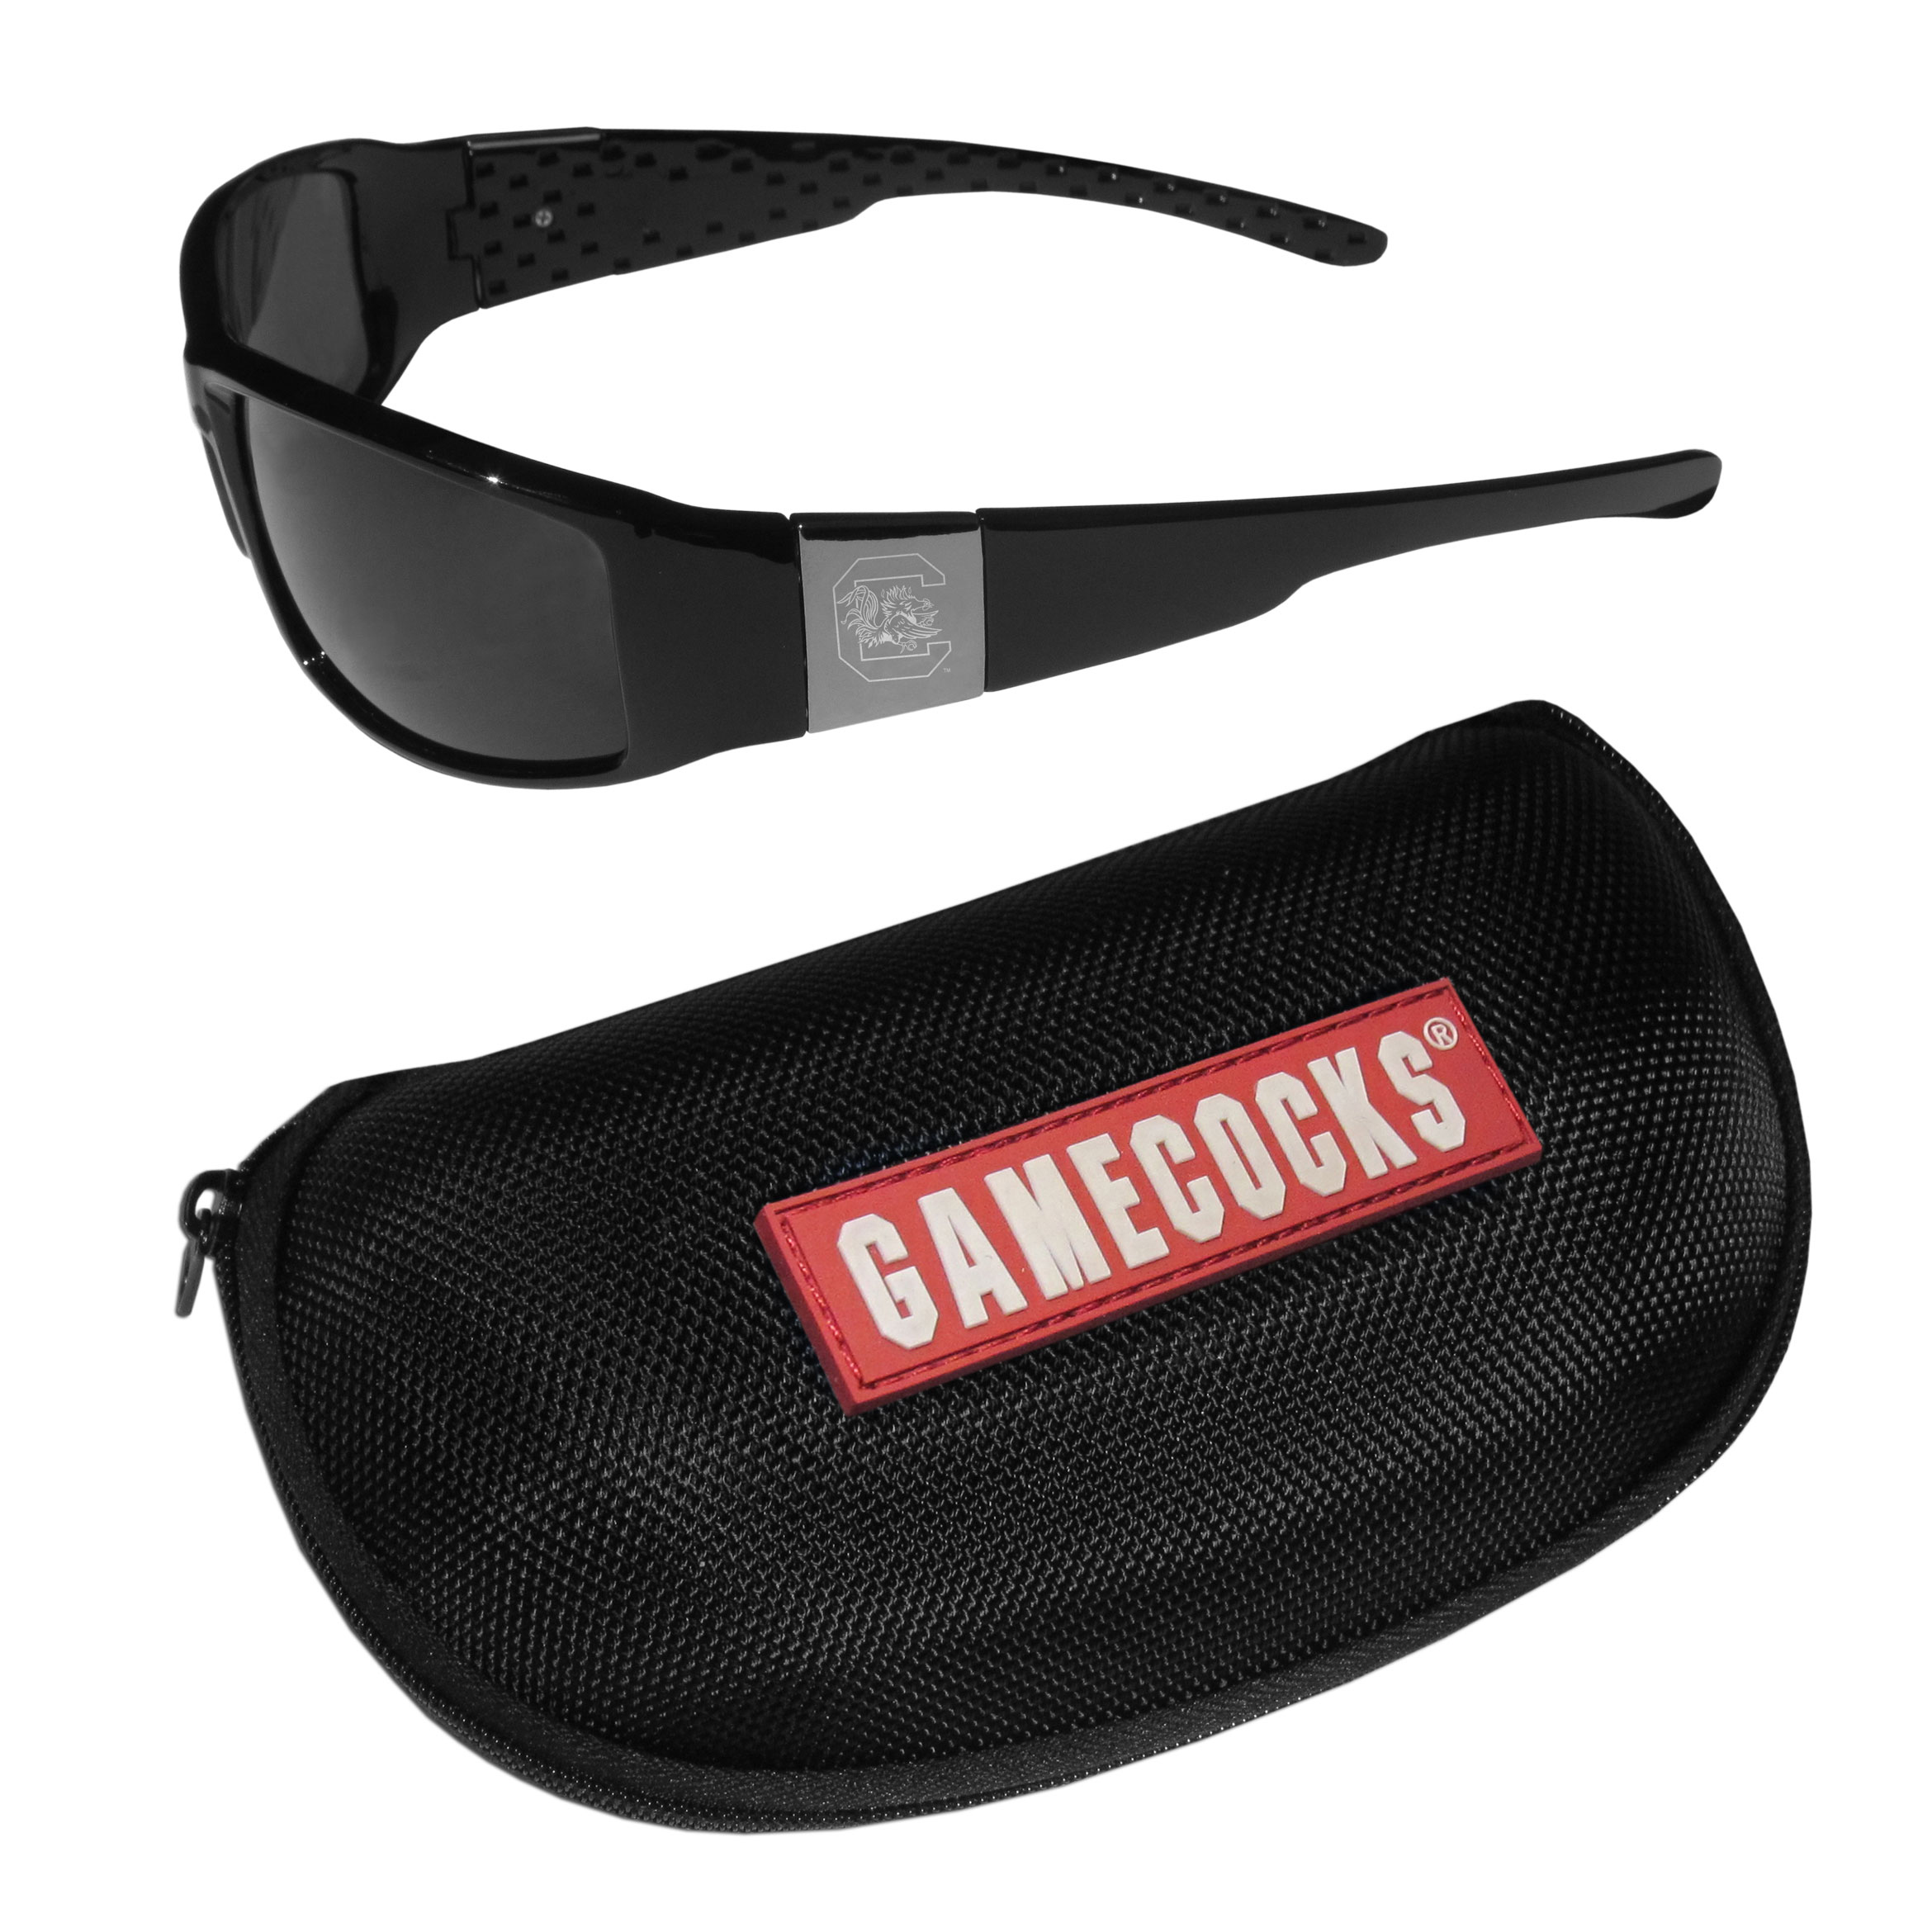 S. Carolina Gamecocks Chrome Wrap Sunglasses and Zippered Carrying Case - These designer inspired frames have a sleek look in all black with high-polish chrome S. Carolina Gamecocks shields on each arm with an etched logo. The shades are perfect any outdoor activity like; golfing, driving, hiking, fishing or cheering on the team at a tailgating event or an at home game day BBQ with a lens rating of 100% UVA/UVB for maximum UV protection. The high-quality frames are as durable as they are fashionable and with their classic look they are perfect fan accessory that can be worn everyday for every occasion. The shades come with a zippered hard shell case to keep your sunglasses safe.